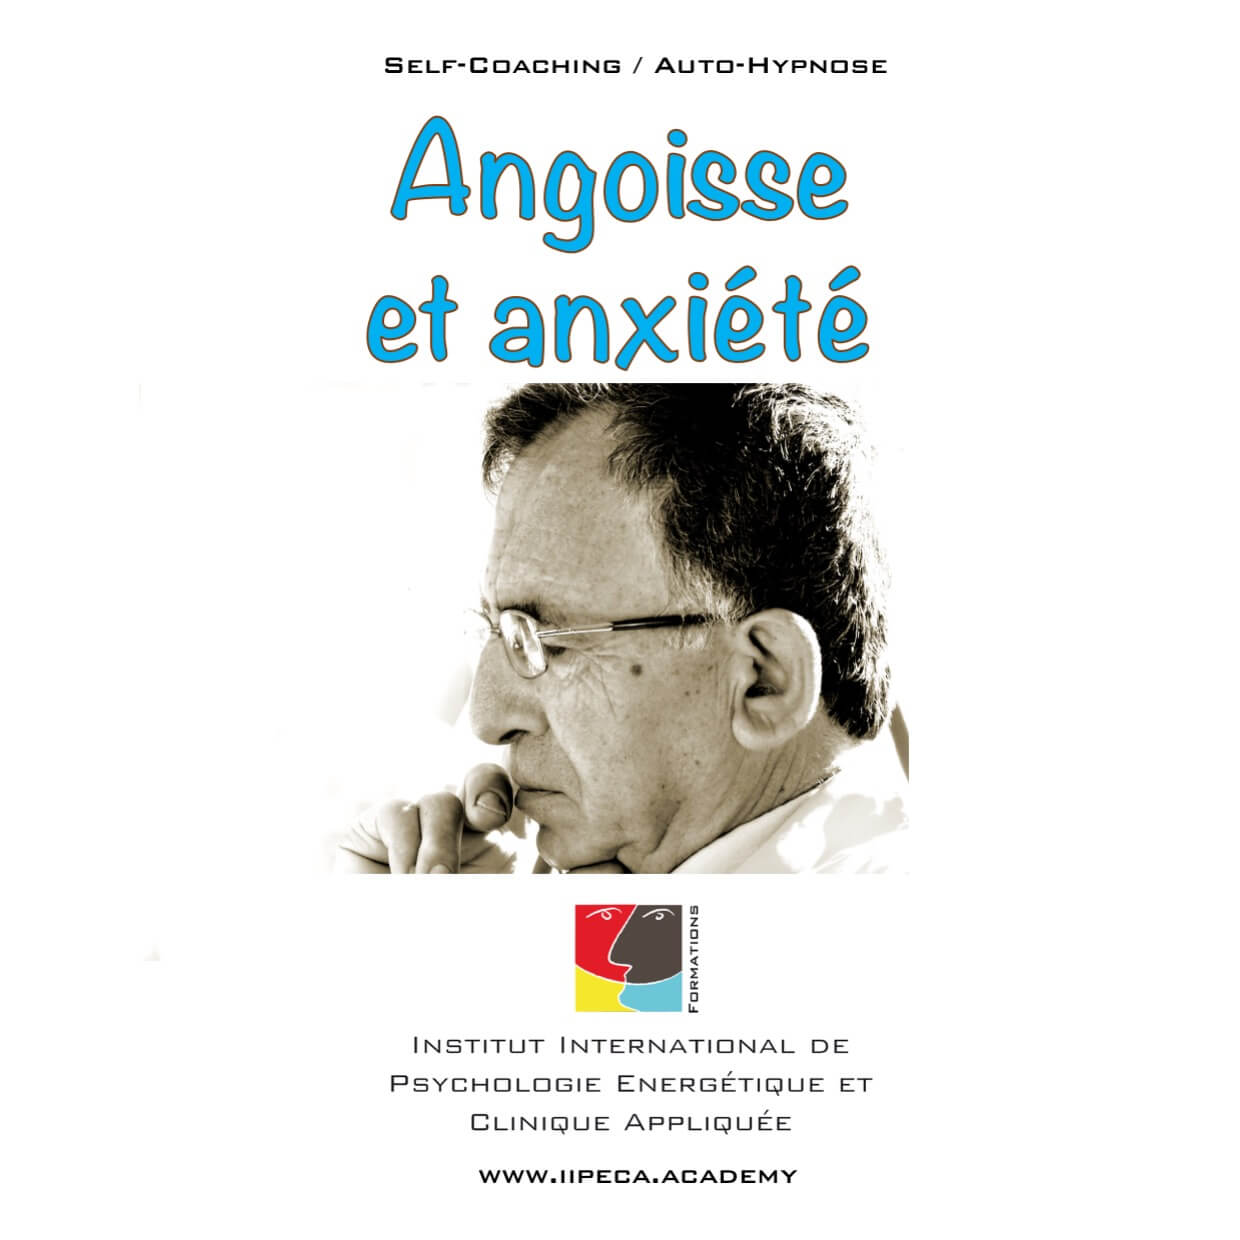 angoisse anxiete iipeca academy mp3 self coaching auto-hypnose